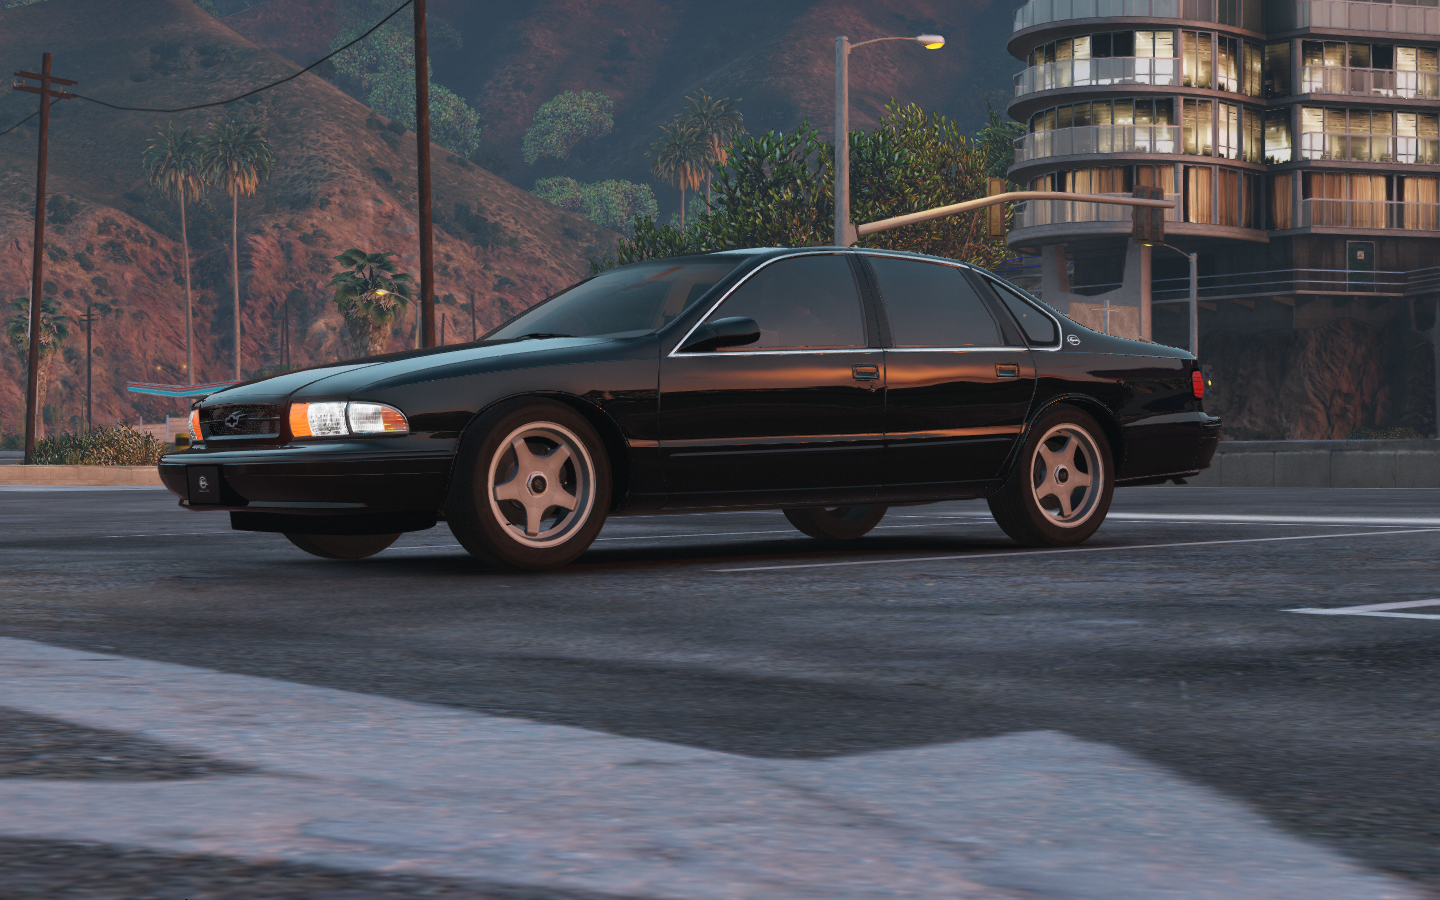 Impala 1996 chevy impala ss : Chevrolet Impala SS '96 [Add-On / Replace | Wipers] - GTA5-Mods.com